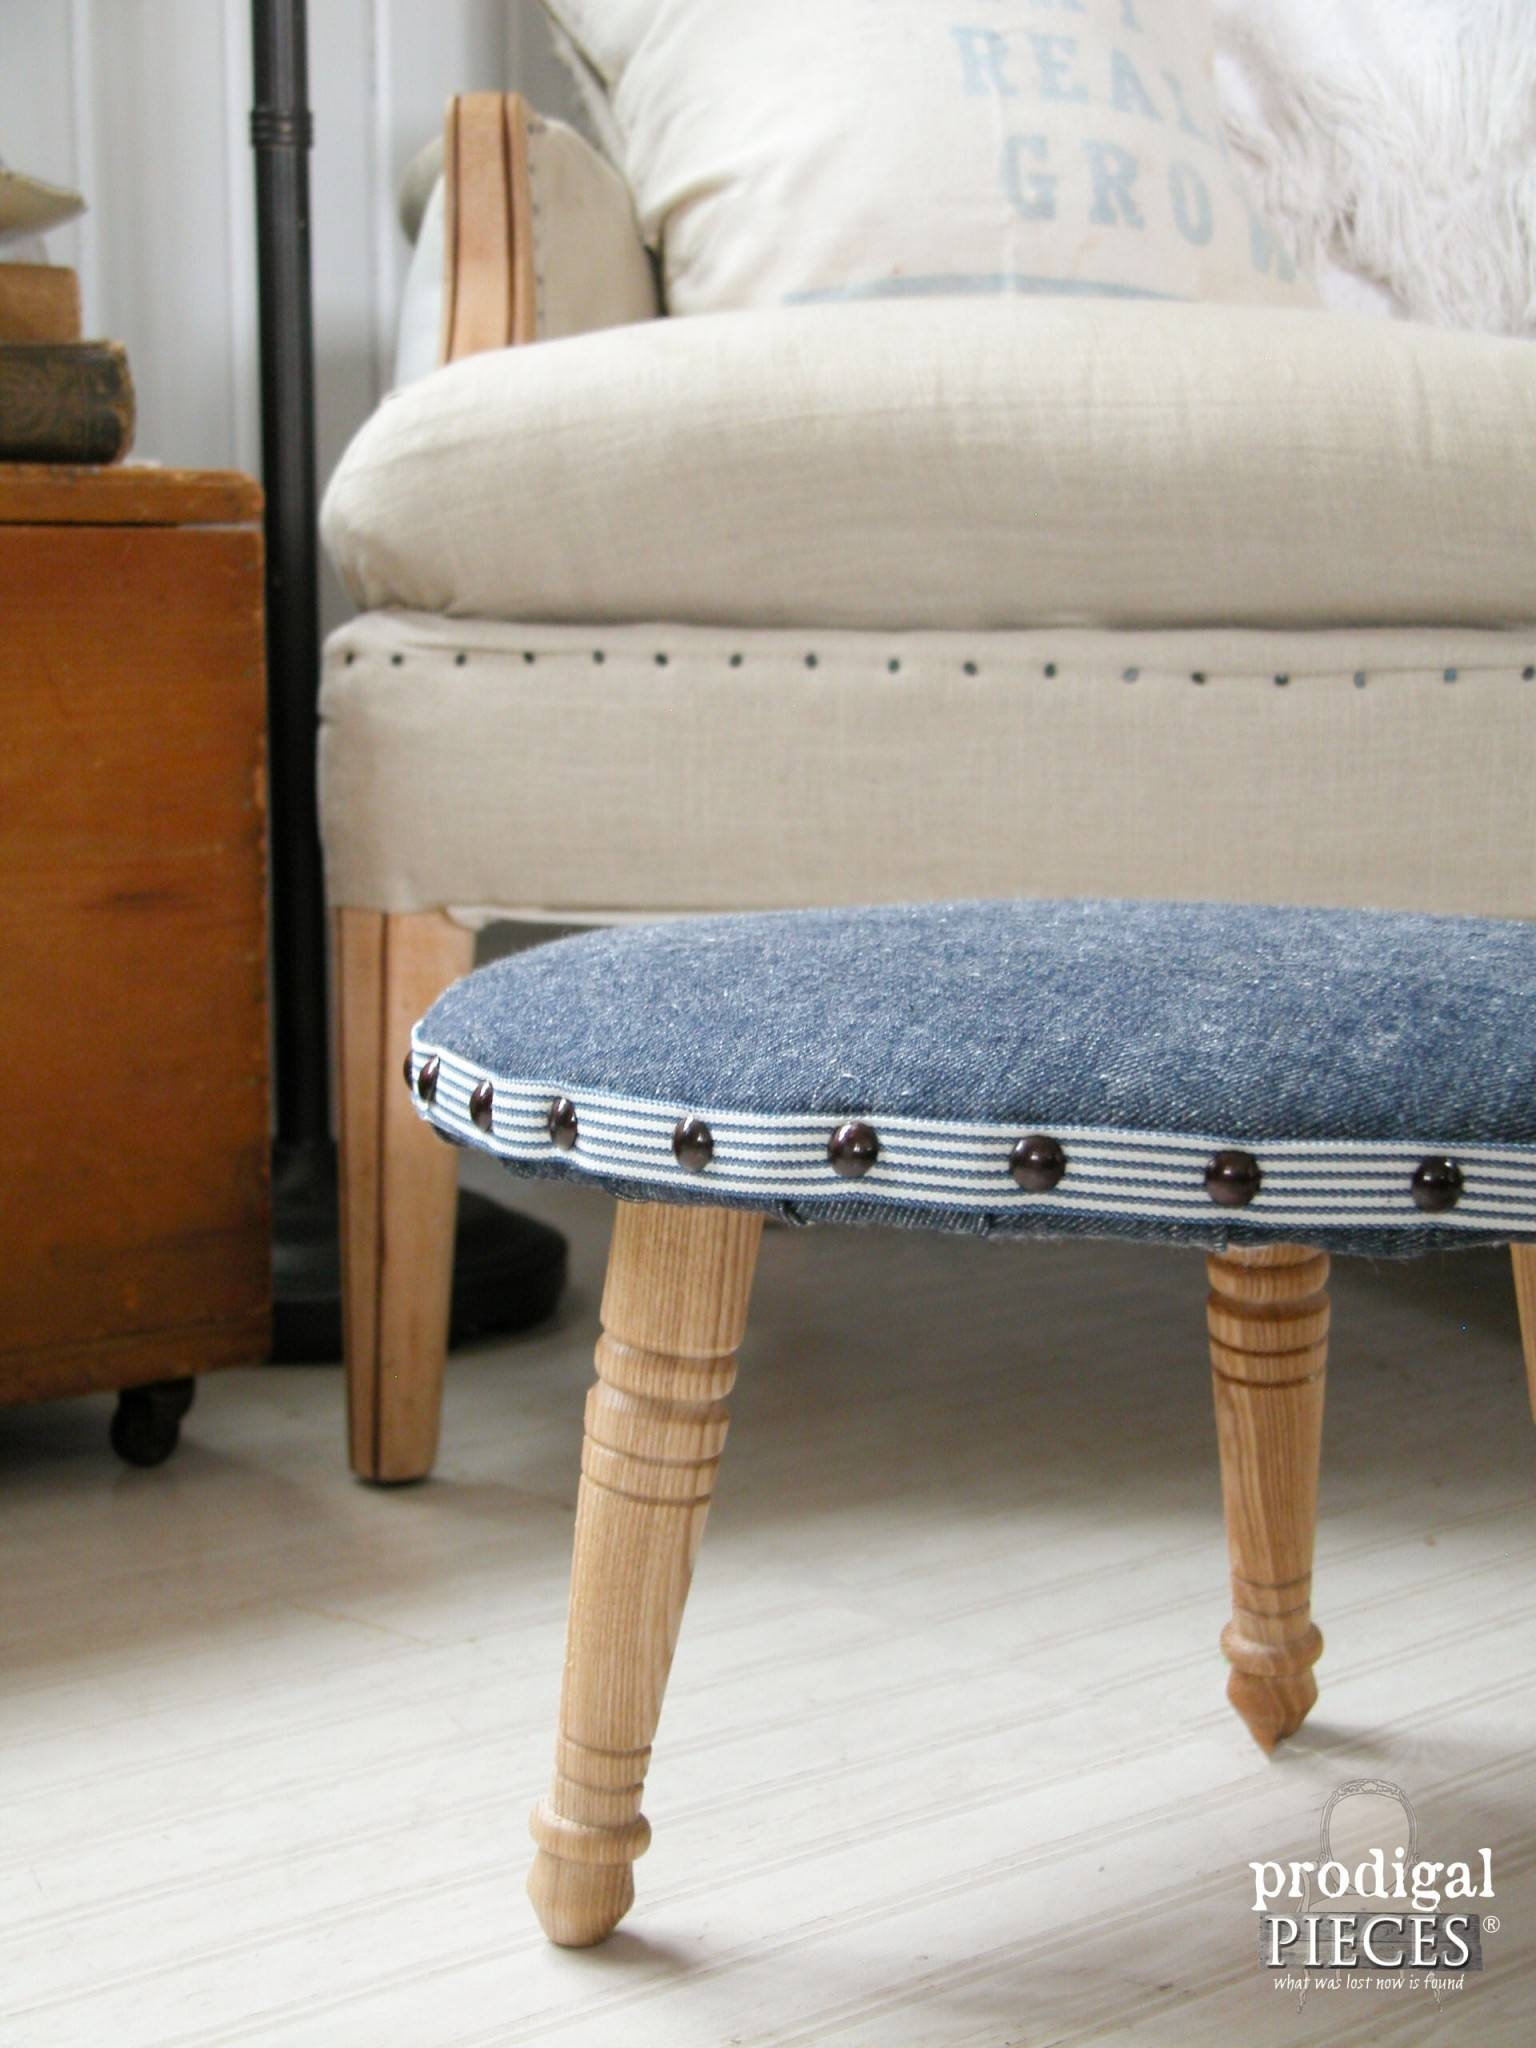 Upholstered Footstool ~ A One-Legged Wonder - Prodigal Pieces pertaining to Upholstered Footstools (Image 27 of 30)